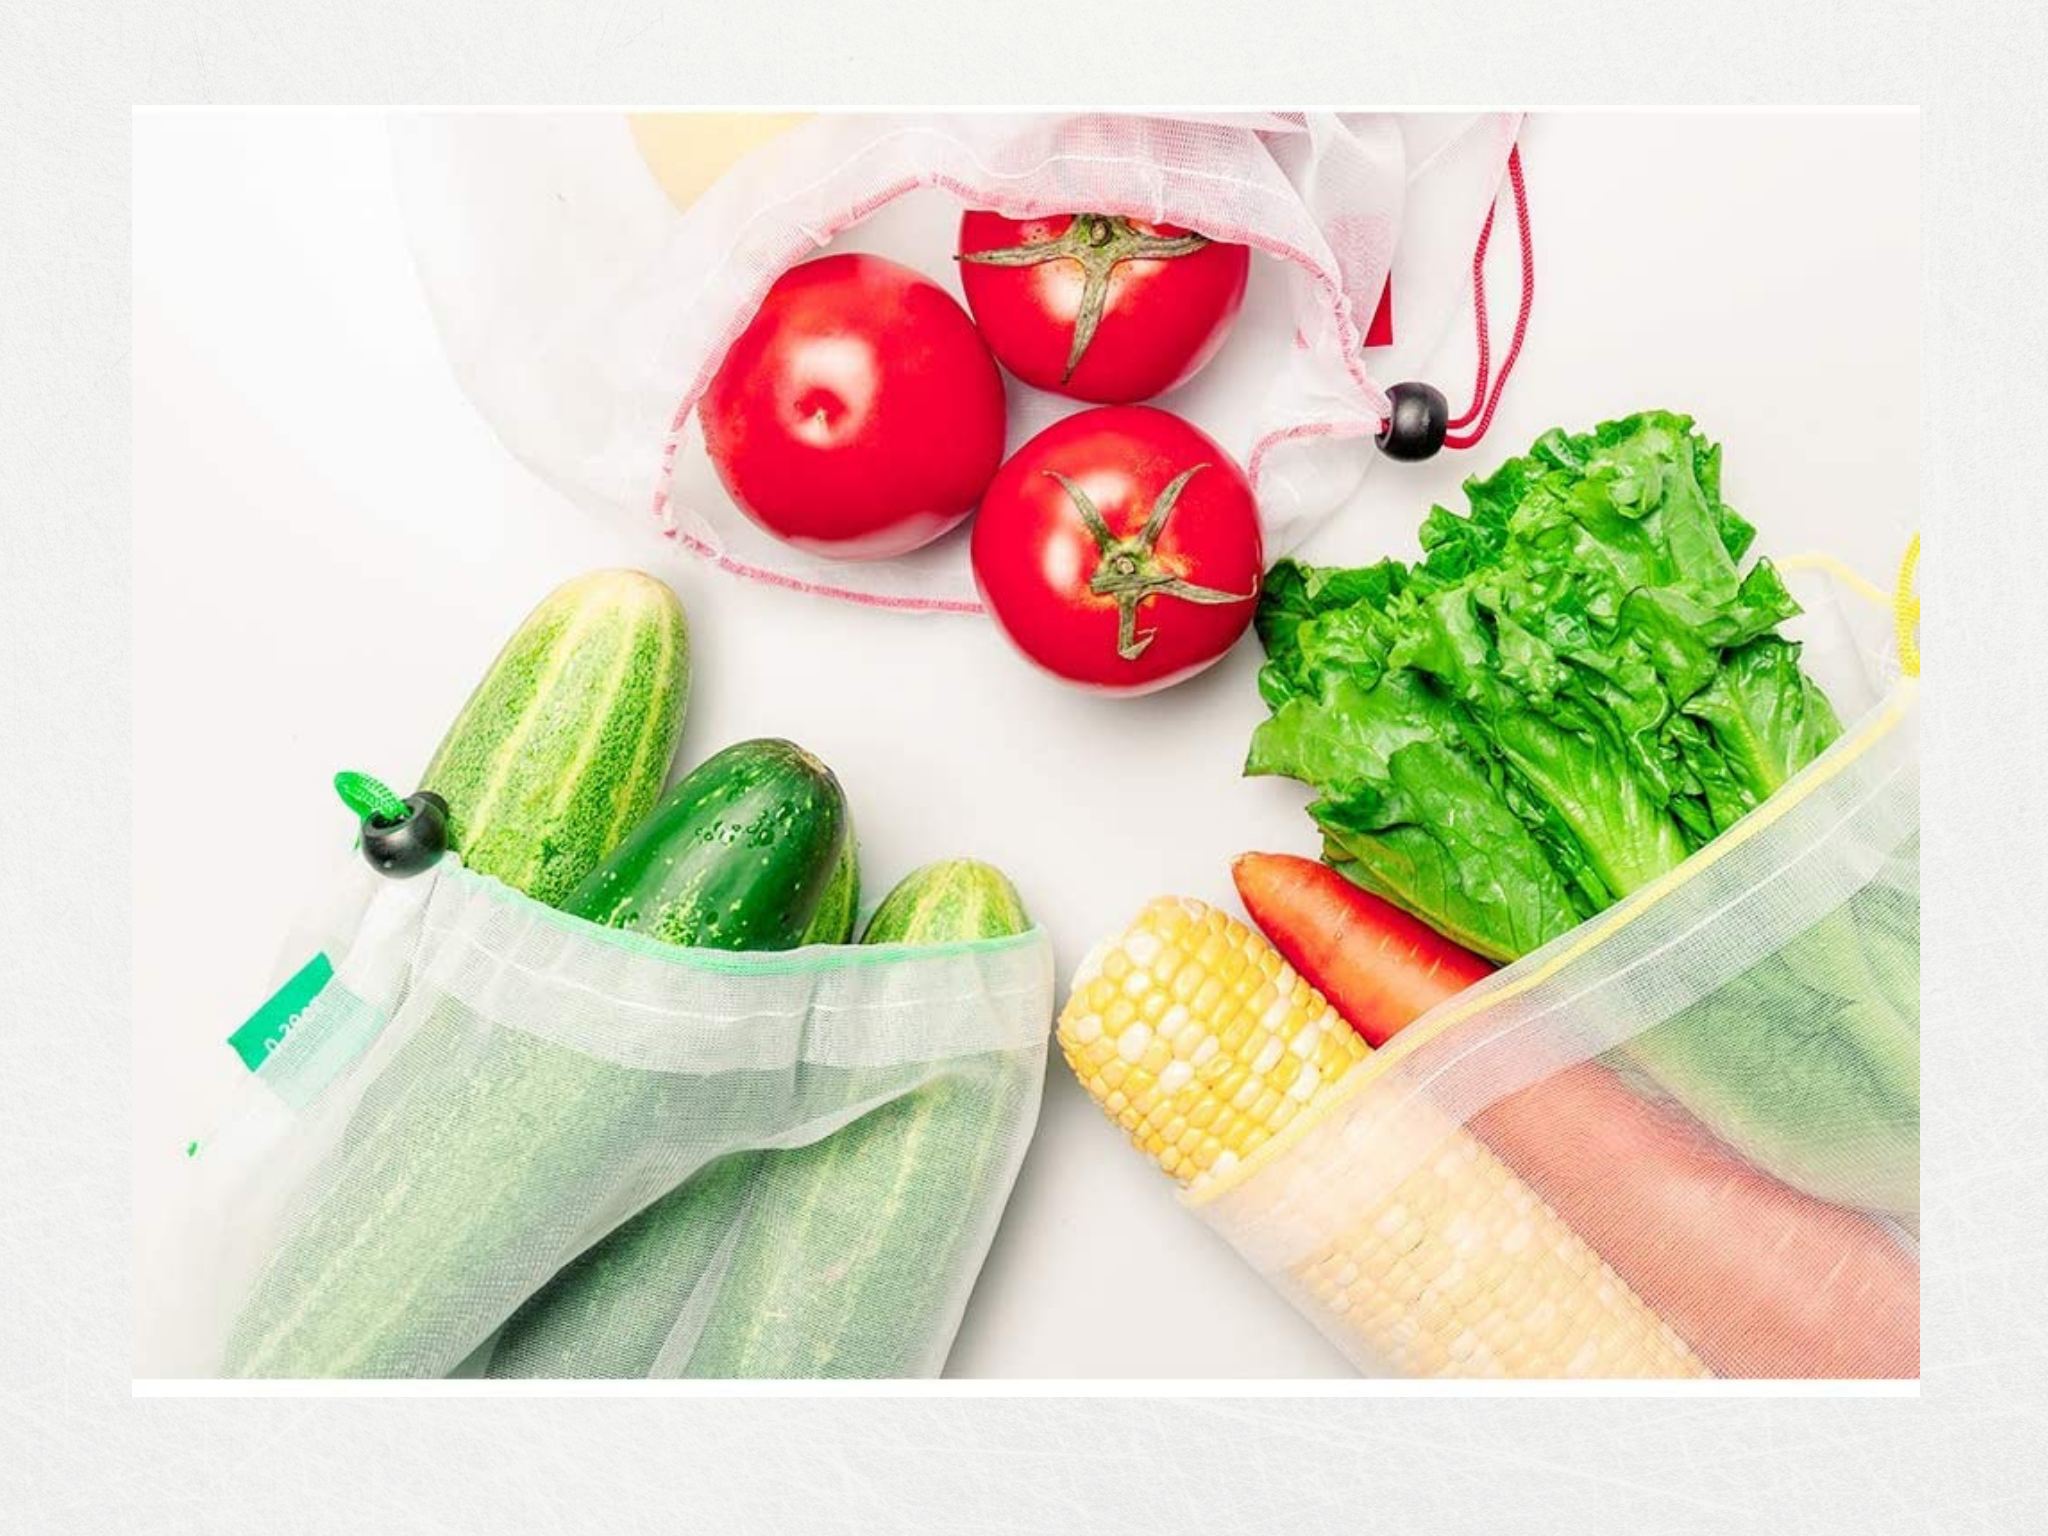 Produce in reusable mesh bags